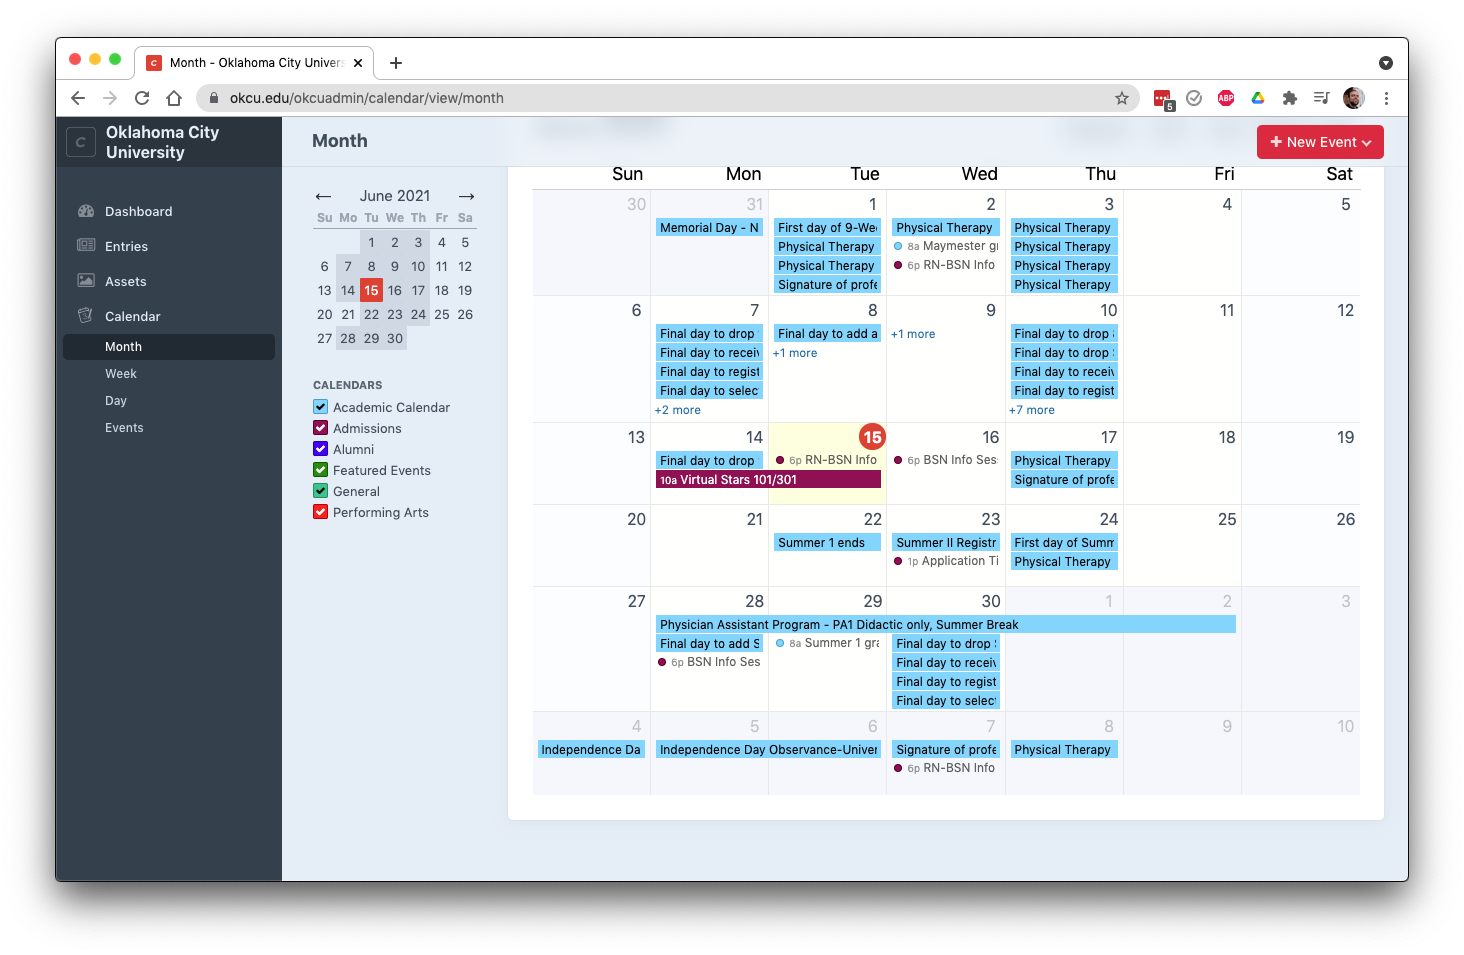 The main calendar page as seen when logged into Craft content management system.